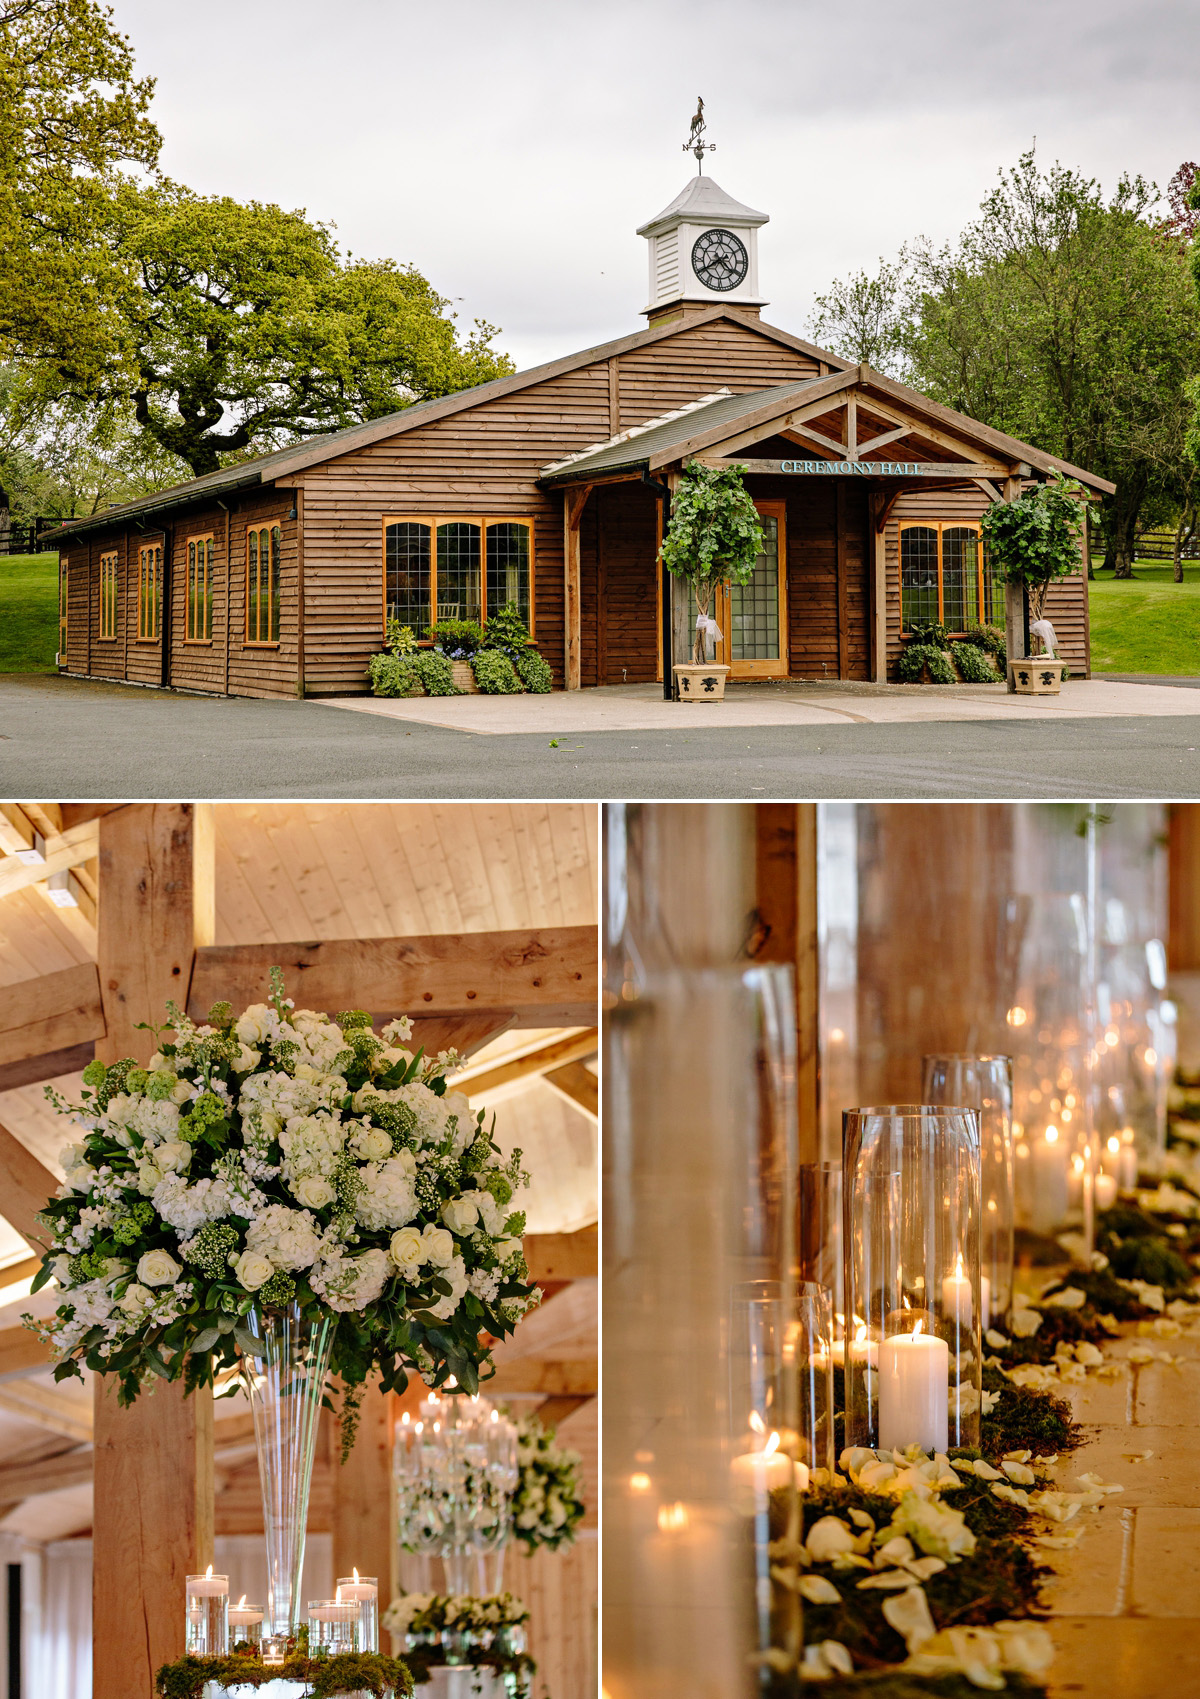 The wedding ceremony room and beautiful floral decoration